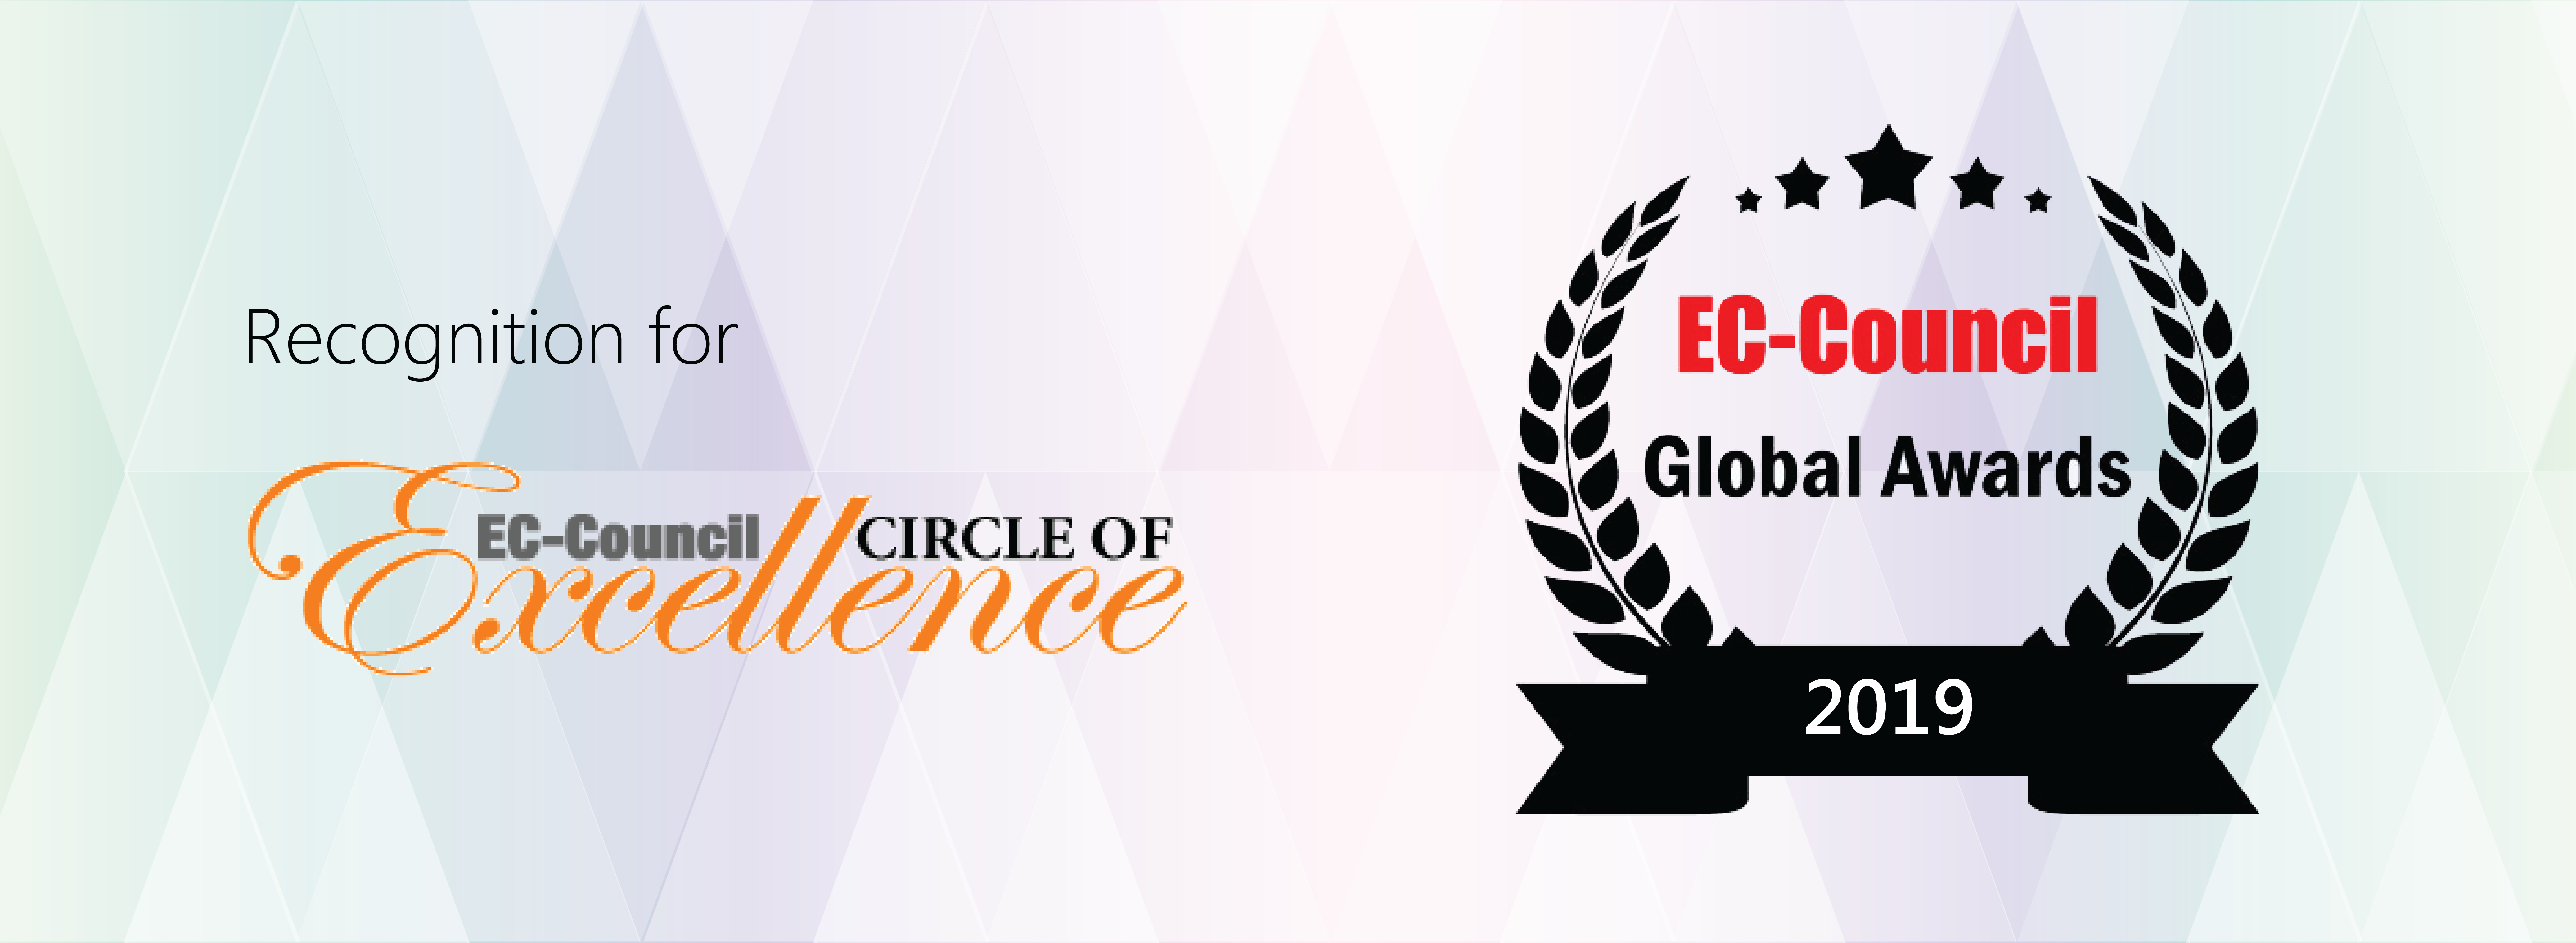 EC Council Circle of Excellence Award